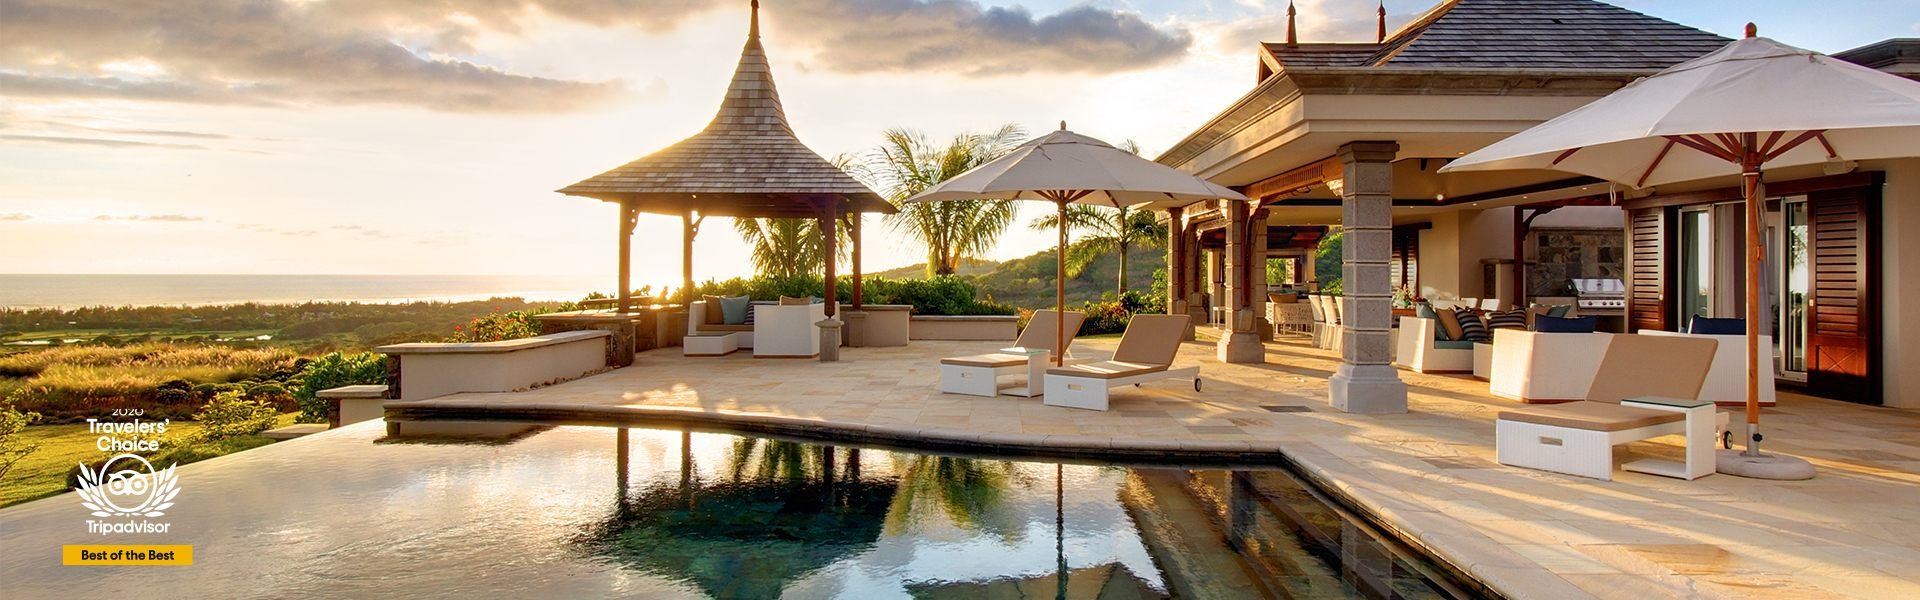 Heritage The Villas Ile MauriceTraveler's Choice Best of the Best